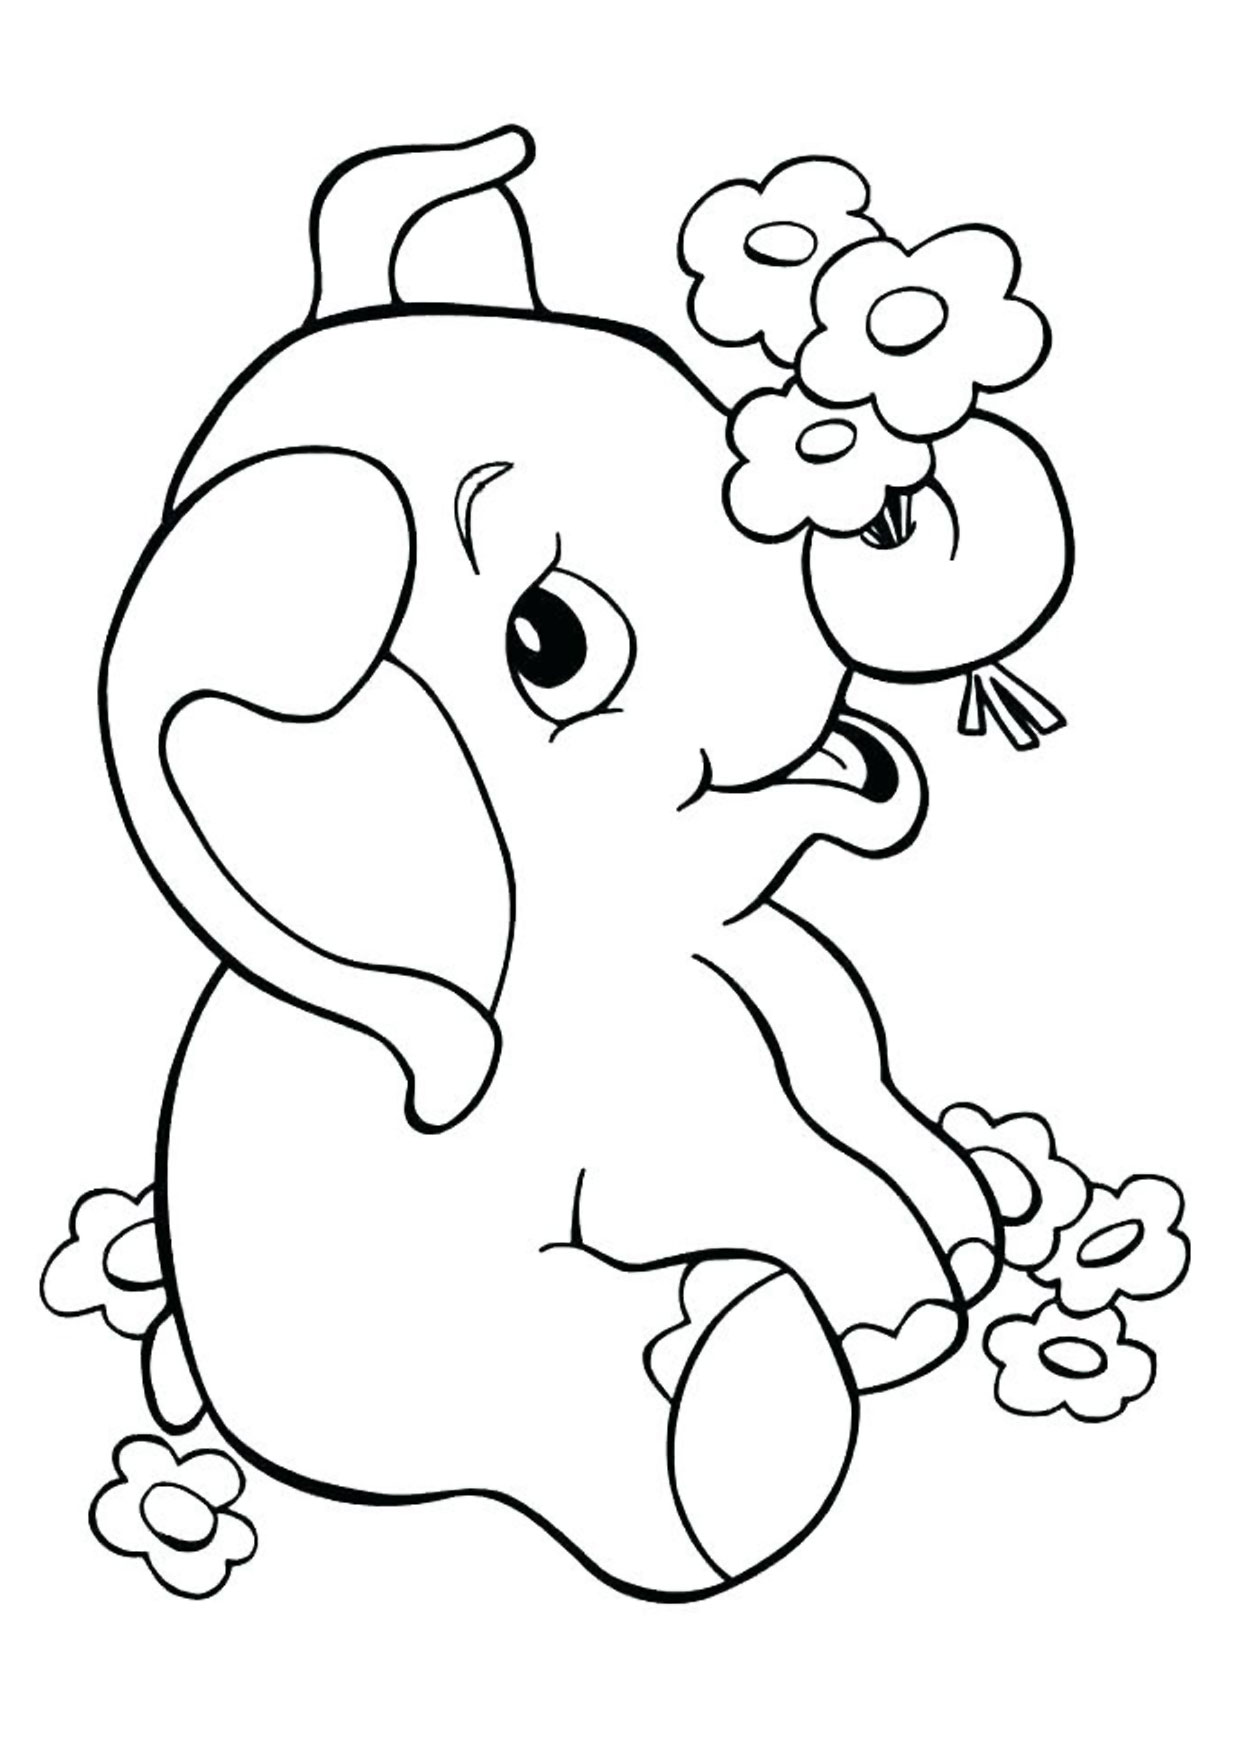 Disegno di Elefante Cartoon da colorare 09